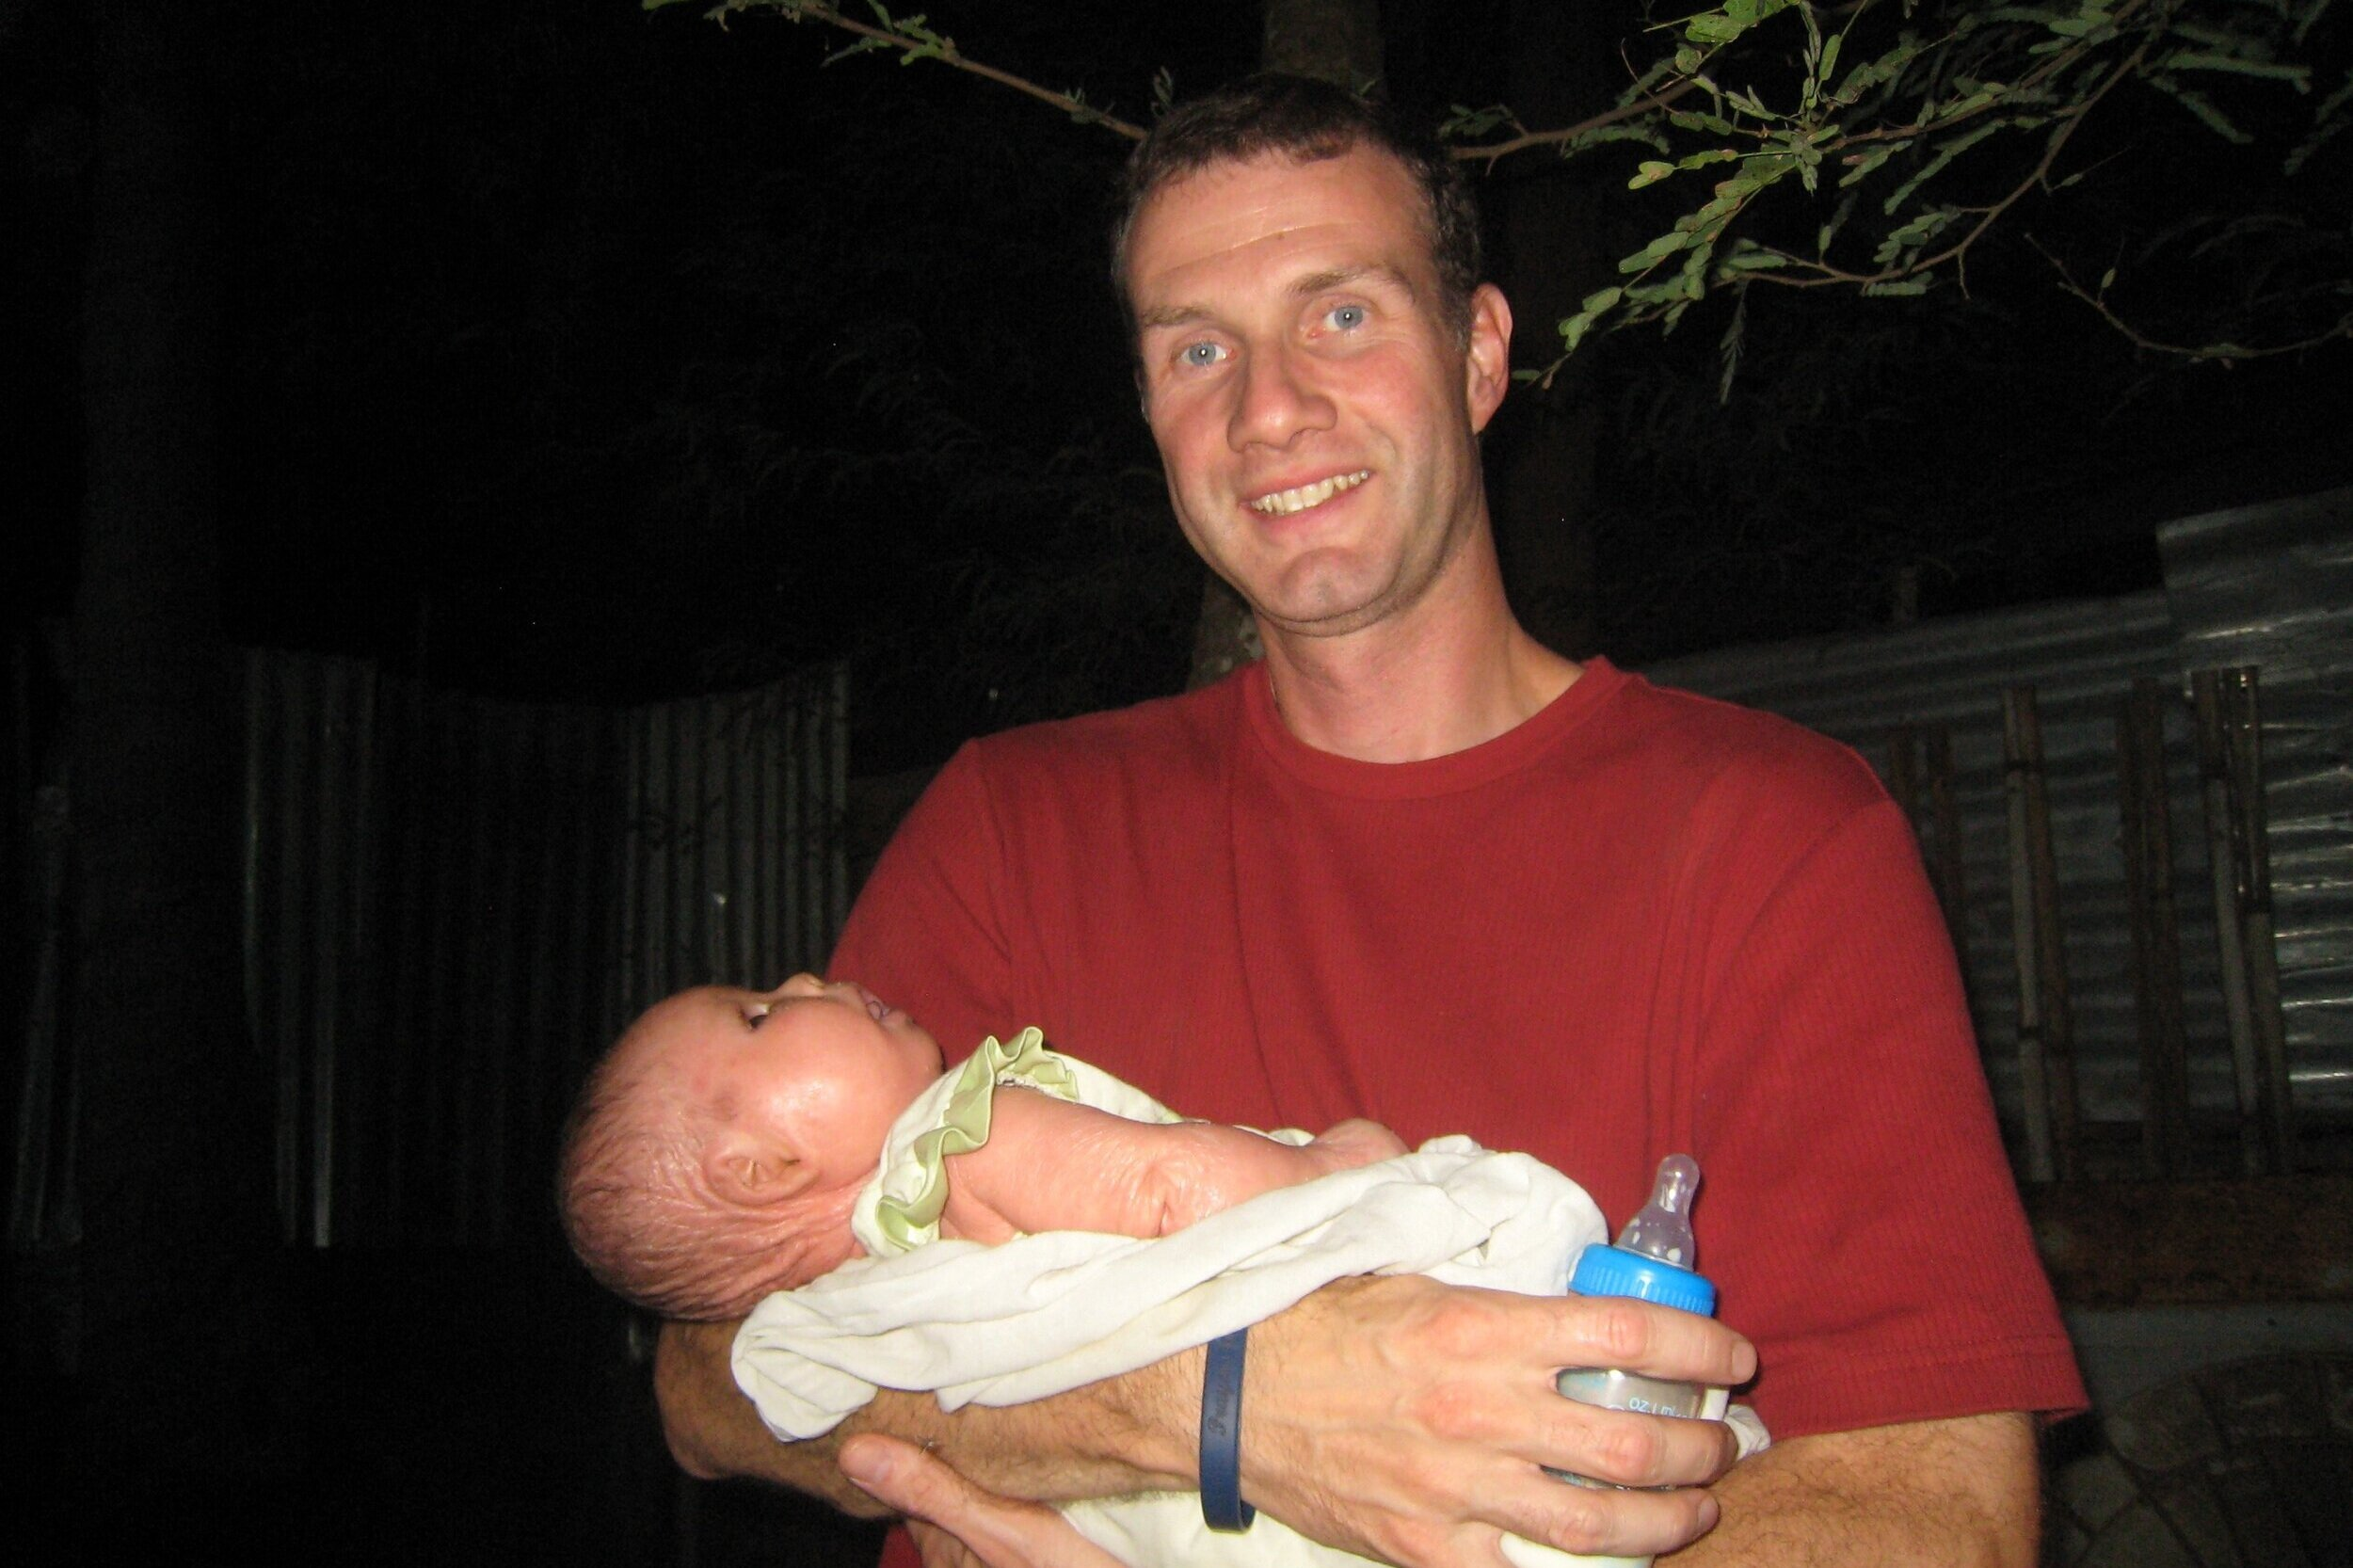 Our longtime volunteer, Adam Rogers, holding Su Su, months after she survived her time at the hospital. He is our #1 Aquaphor carrier! He's been committed to this little girl since birth and has literally provided years of the life-saving cream for Su Su.